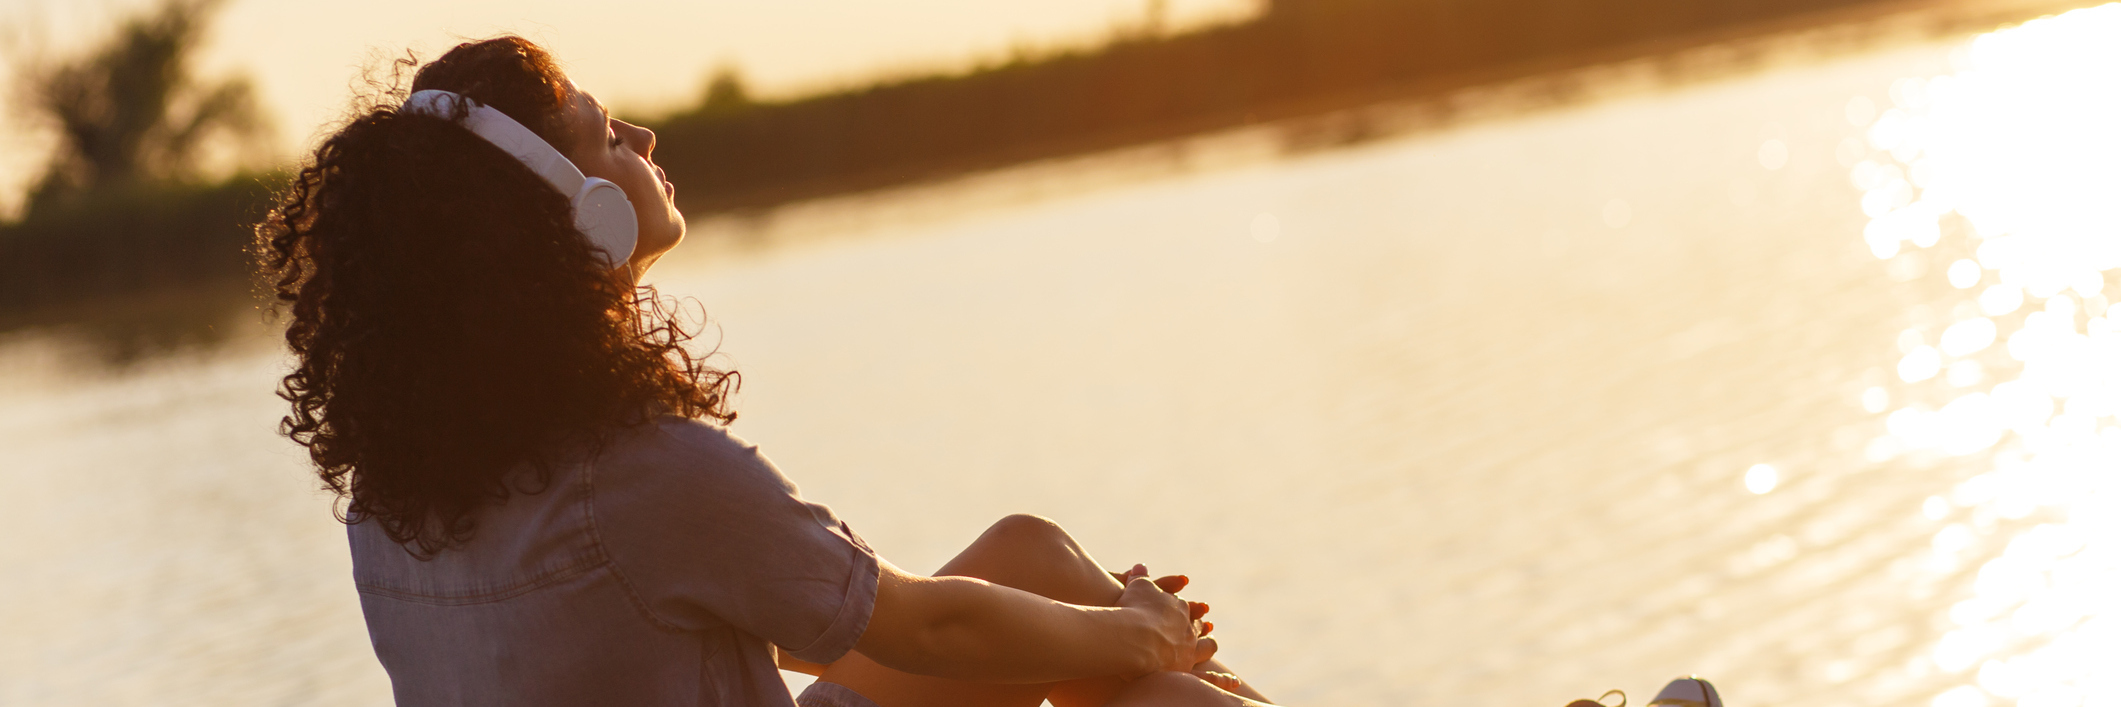 young woman listening to music or meditation on pier at sunset looking relaxed